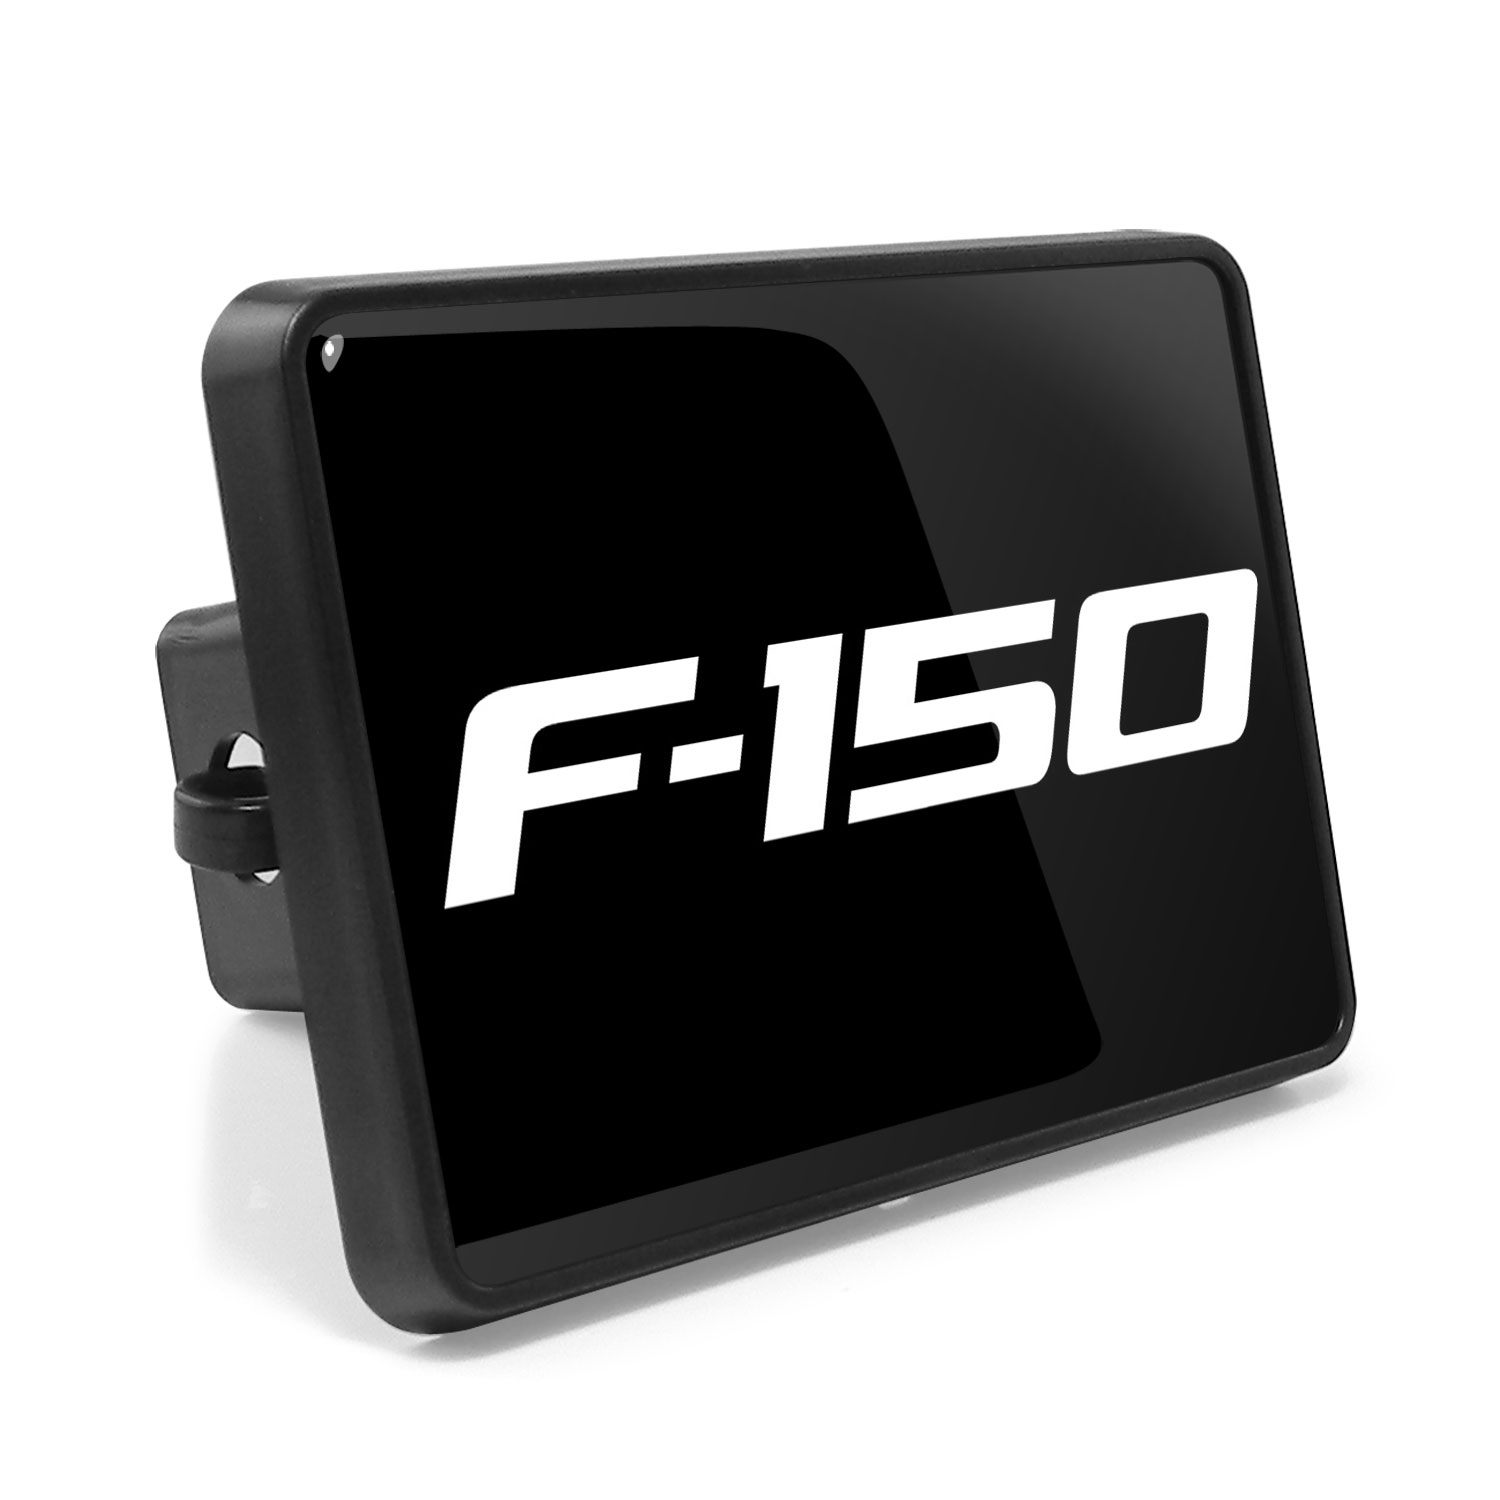 Ford F-150 2009-2014 UV Graphic Metal Plate on ABS Plastic 2 inch Tow Hitch Cover